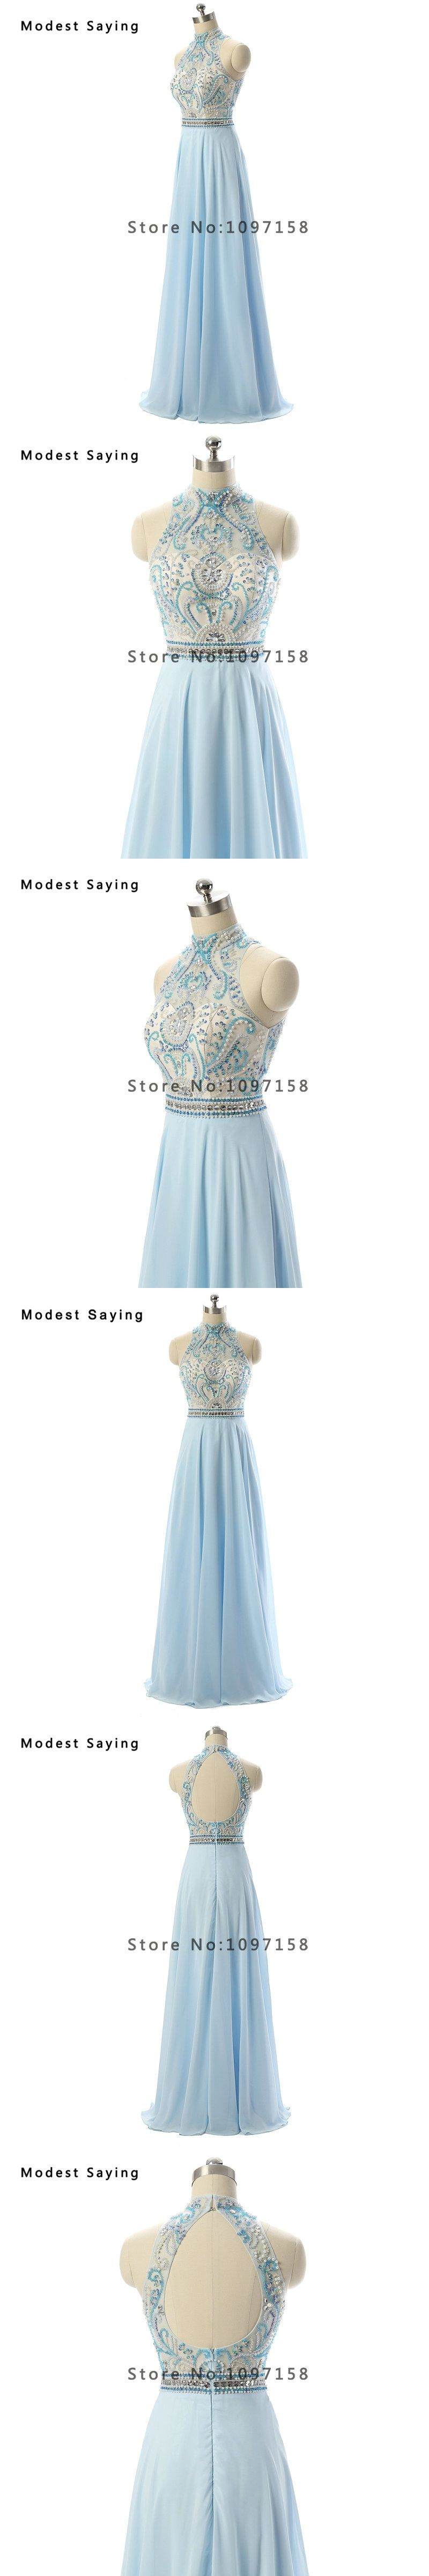 Sexy Pale Blue A-Line High Collar Beaded Evening Dresses 2017 with Rhinestone Women Keyhole Back Party Prom Gowns robe de soiree